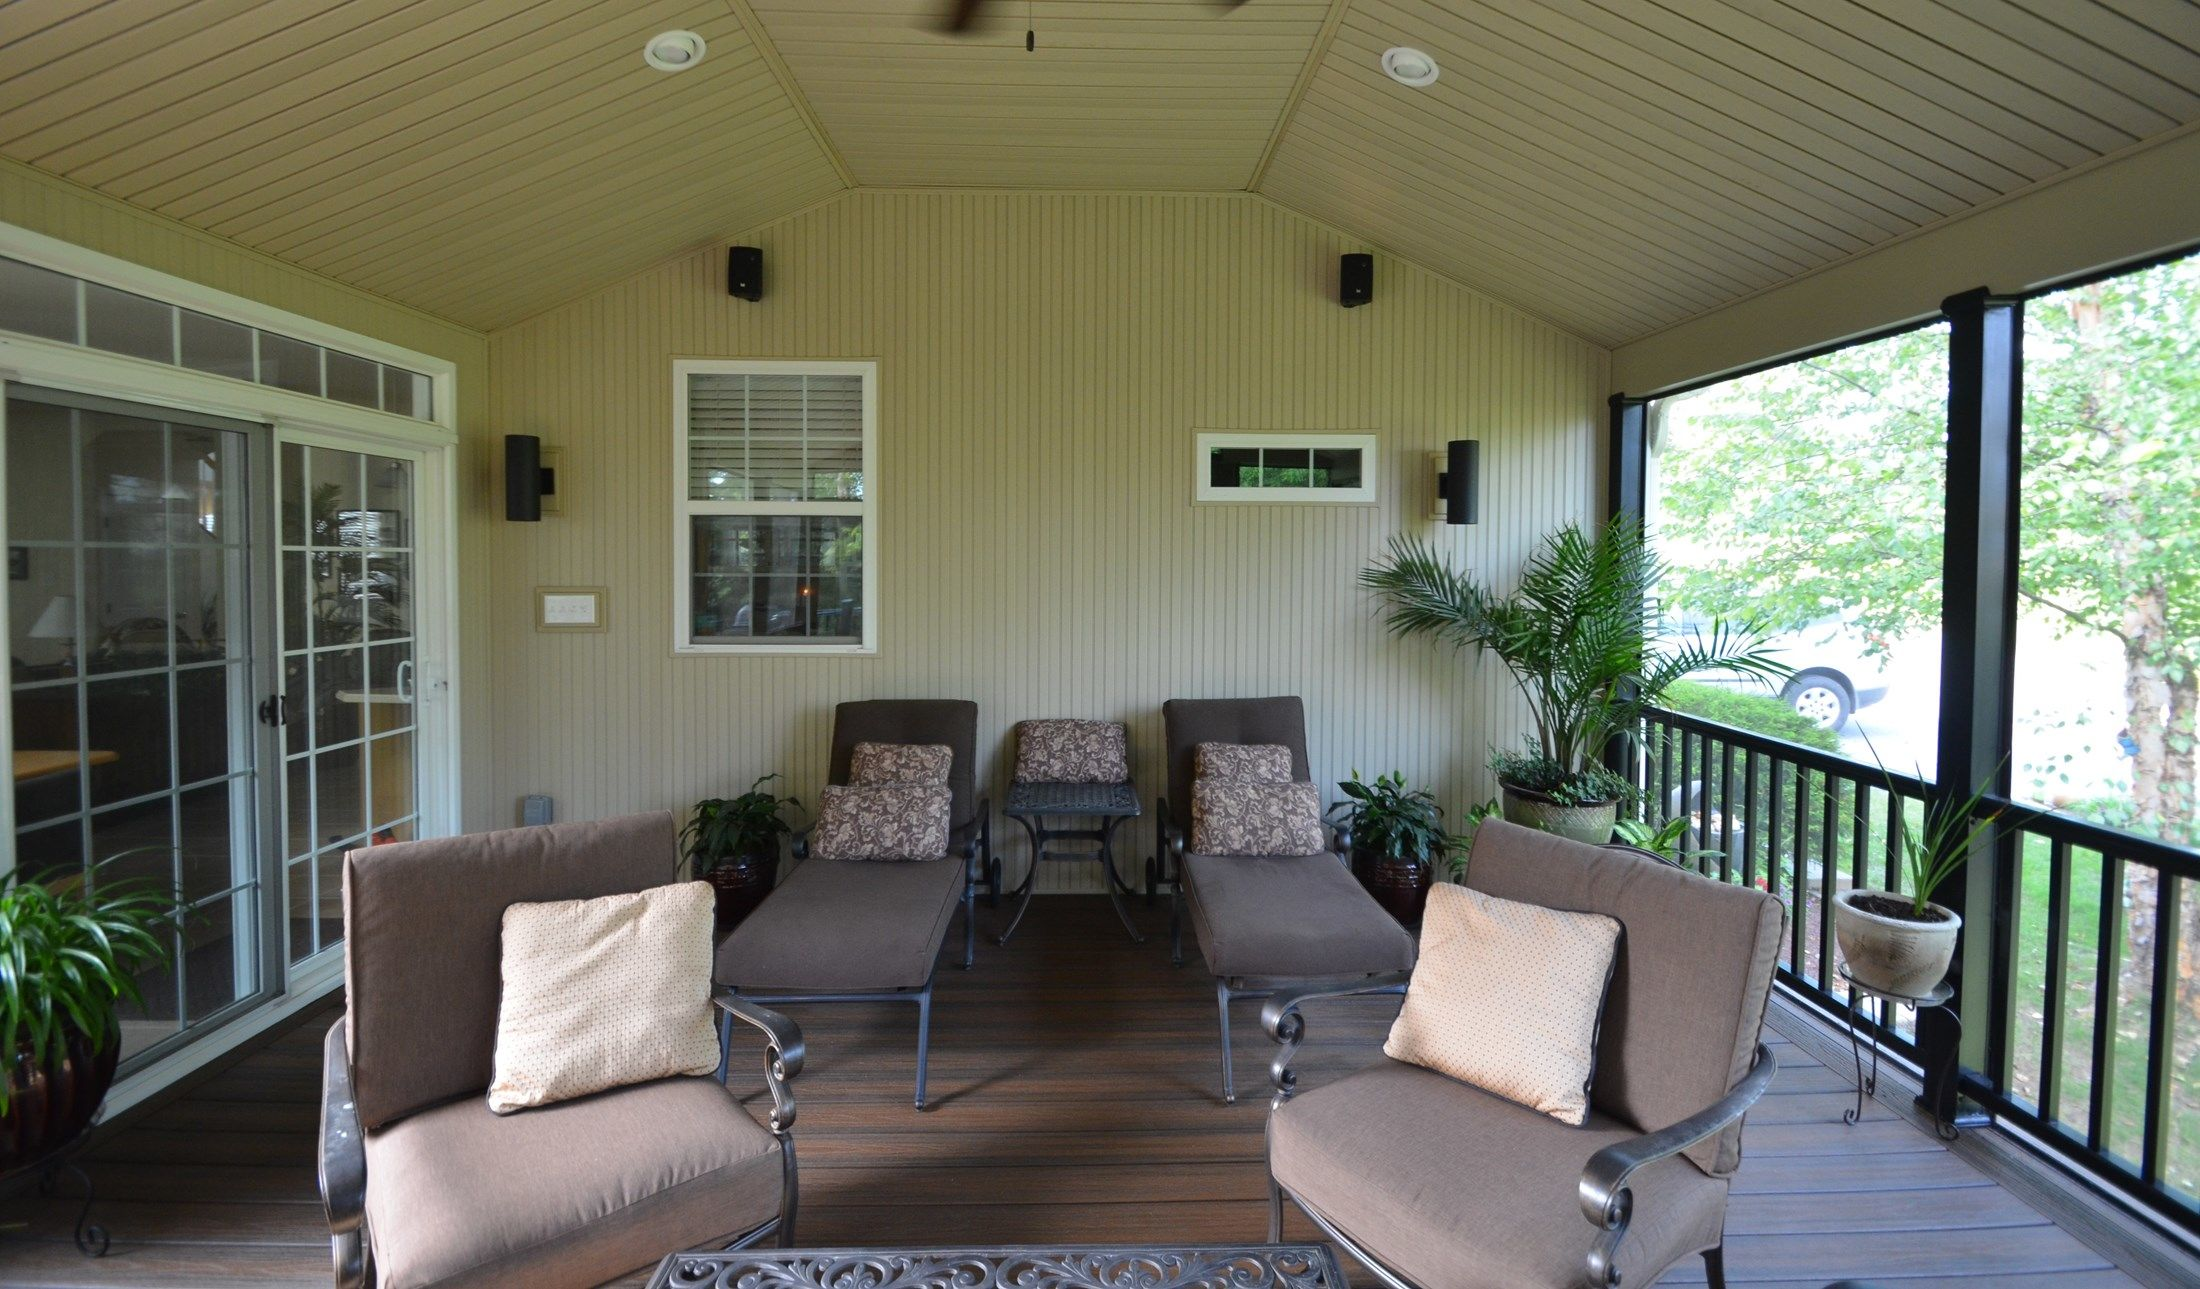 Custom Deck with Fireplace Wall - Picture 1778